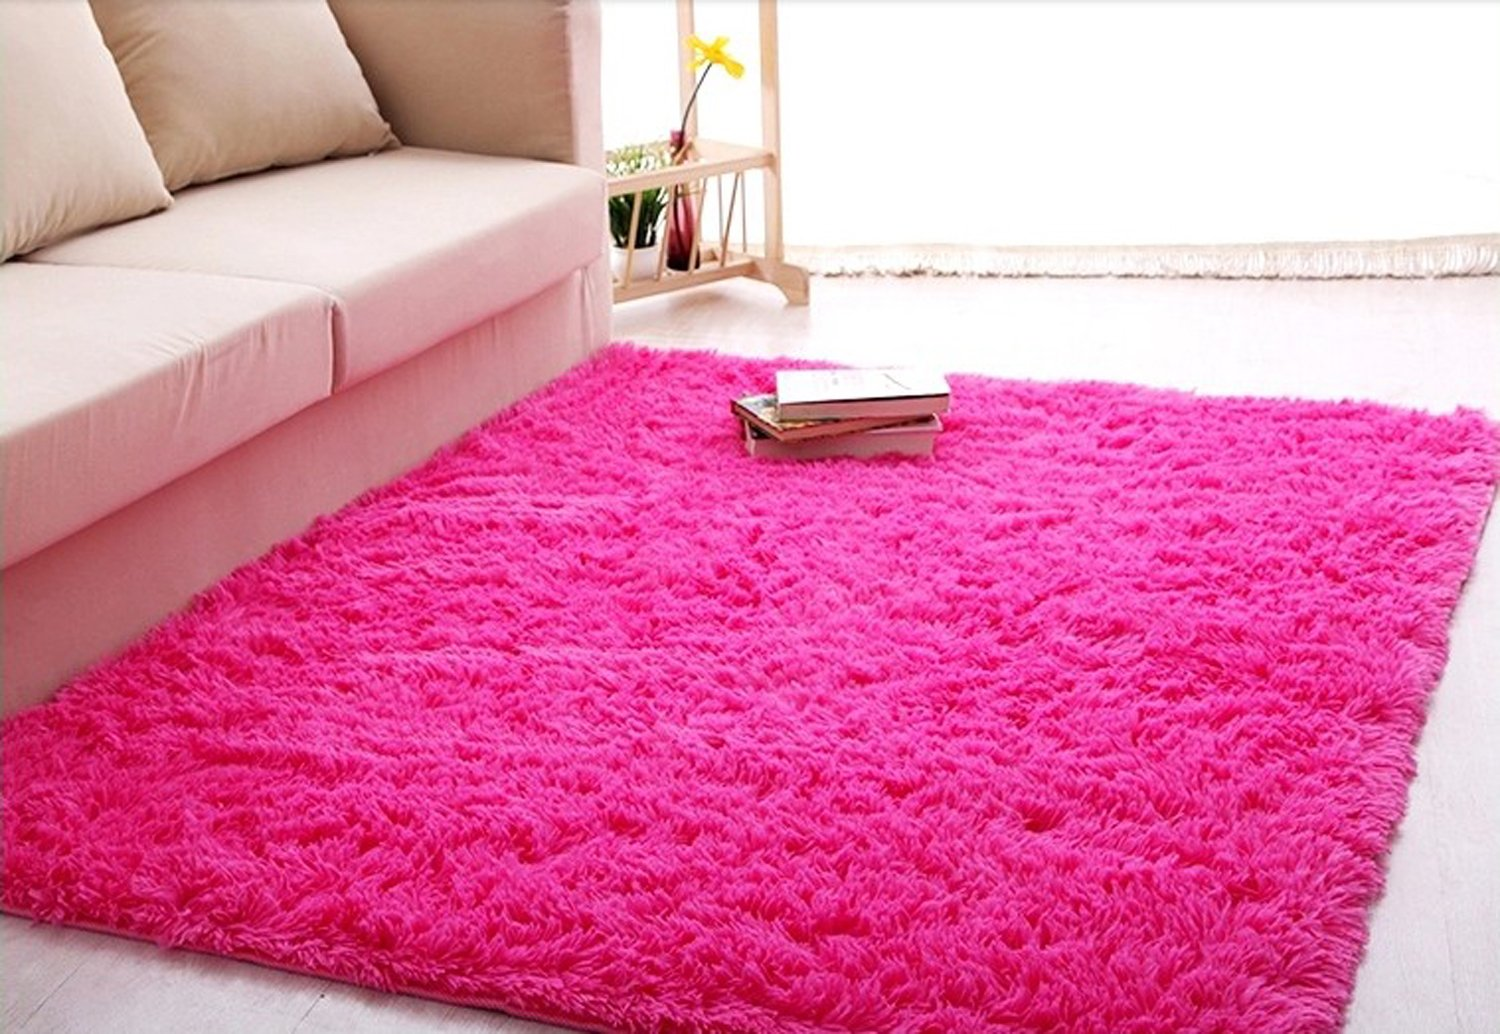 Delicieux Amazon.com : Ultra Soft 4.5 Cm Thick Indoor Morden Area Rugs Pads, New  Arrival Fashion Color [Bedroom] [Livingroom] [Sitting Room] [Rugs]  [Blanket] ...